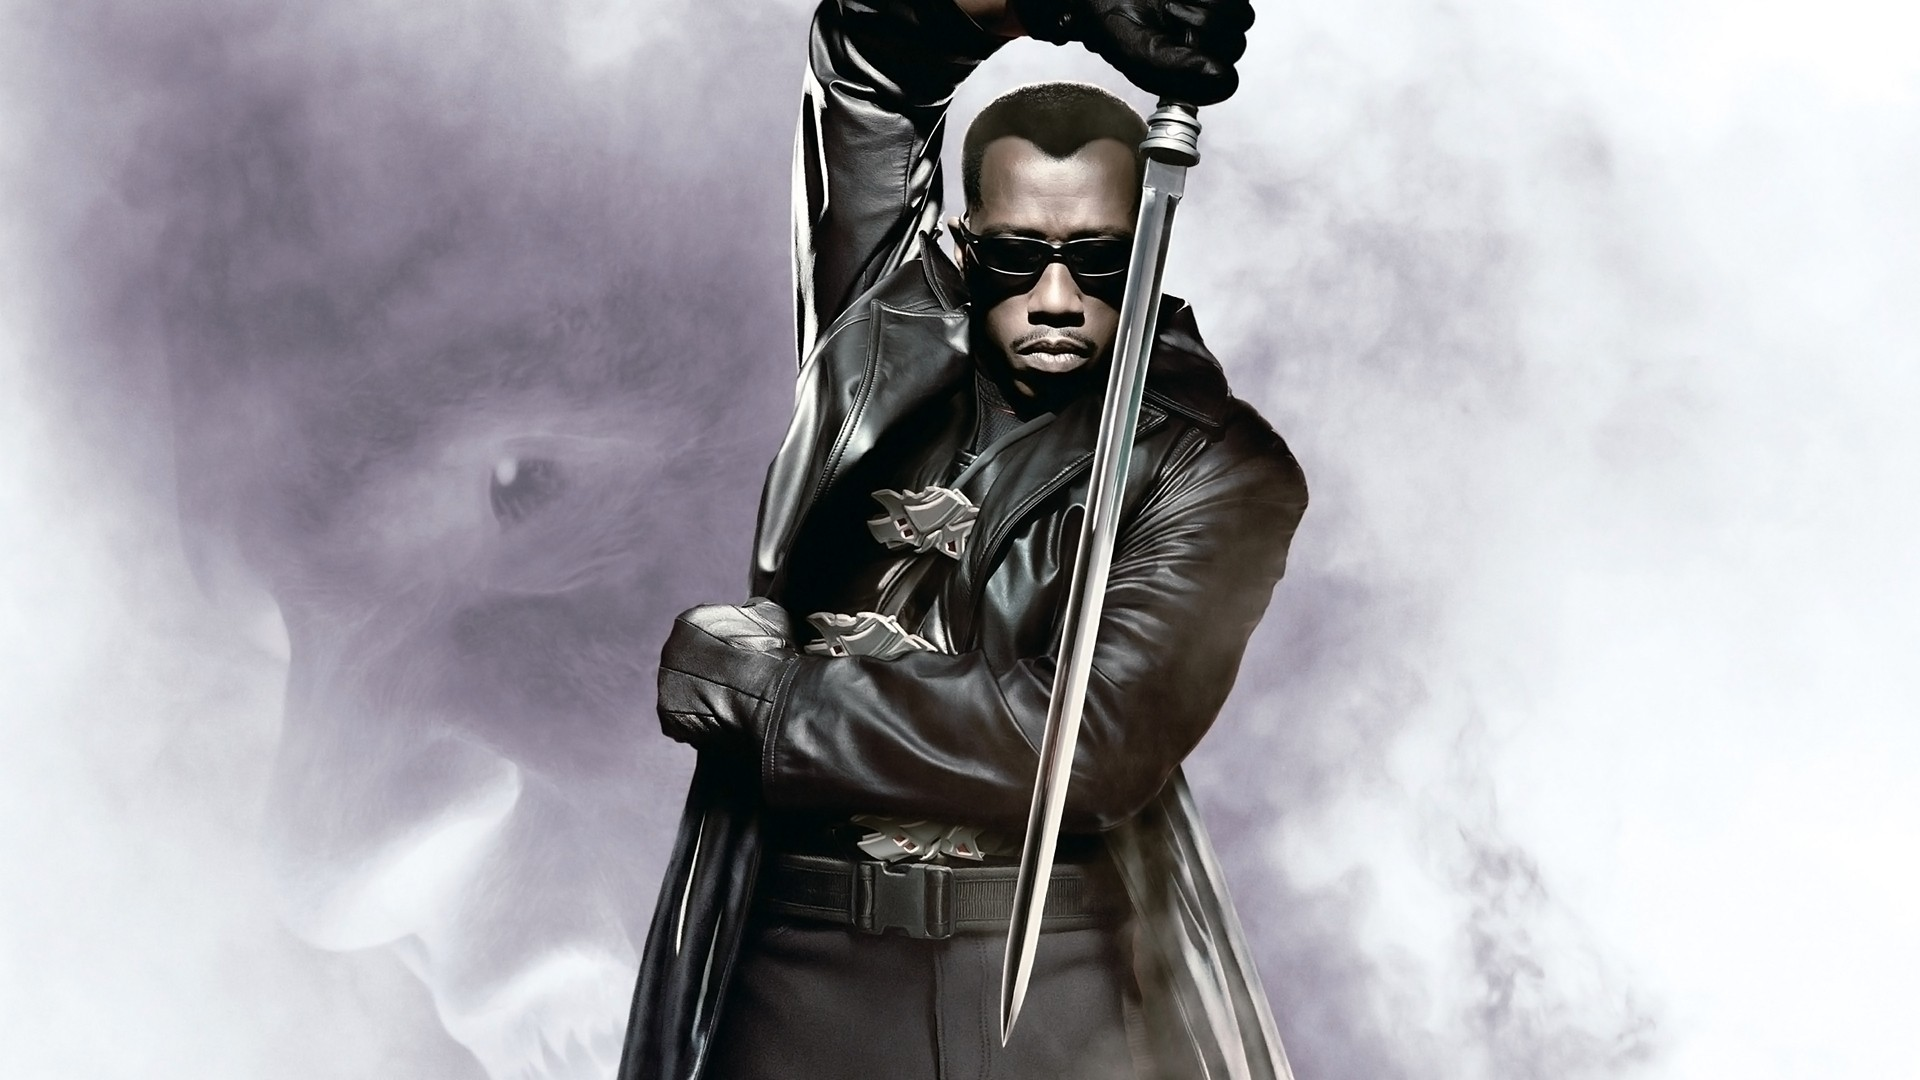 Wesley Snipes as Blade.